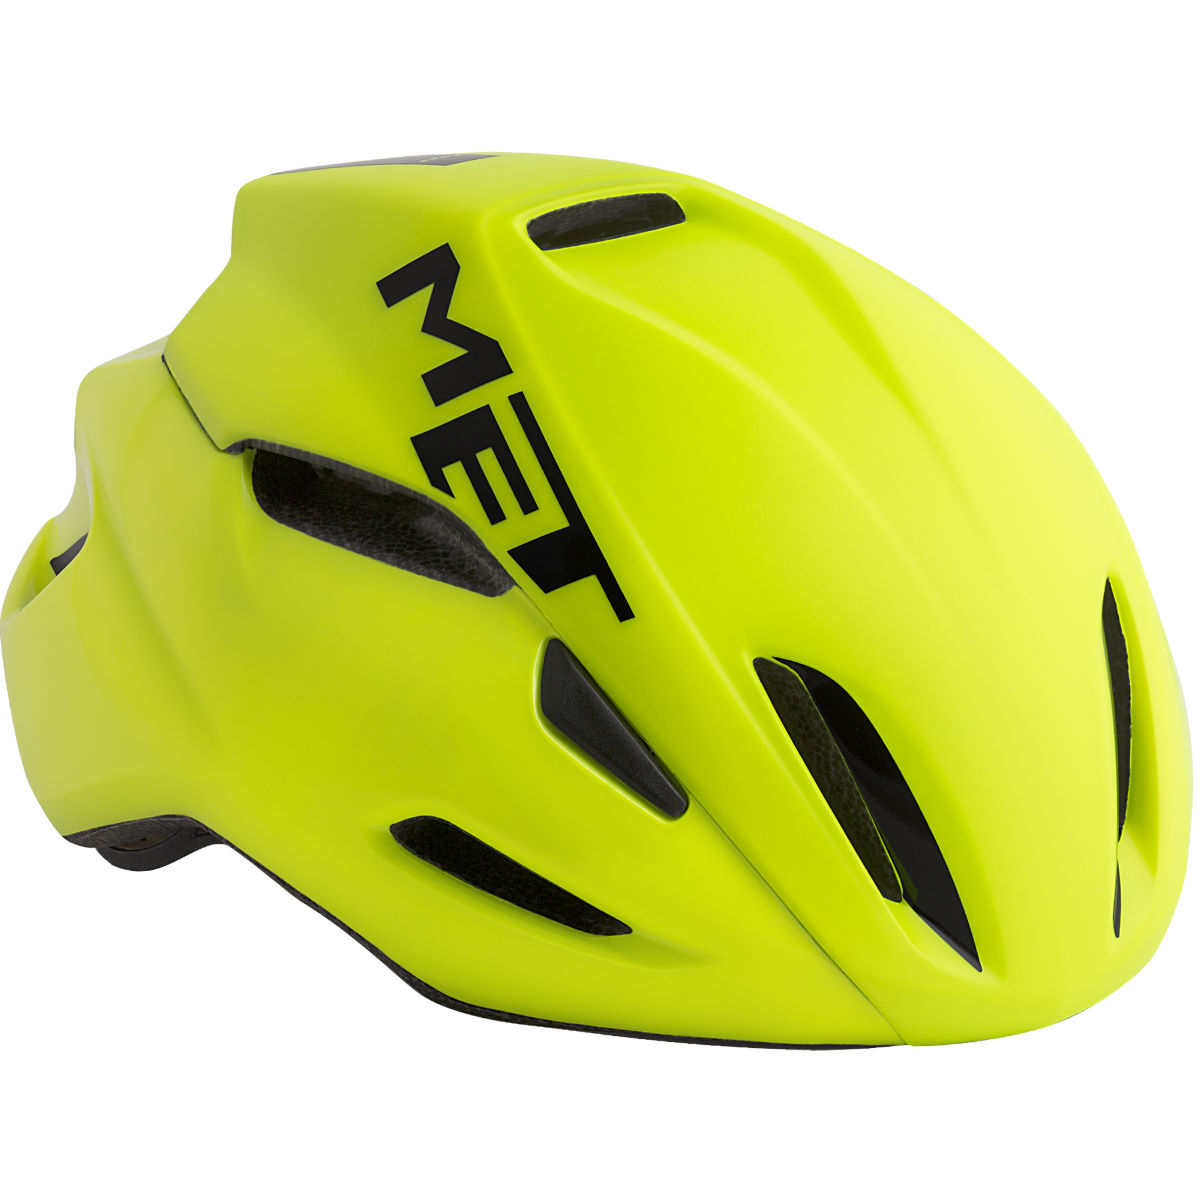 Image of Casque de route MET Manta - 52cm to 56cm Safety Yellow   Casques